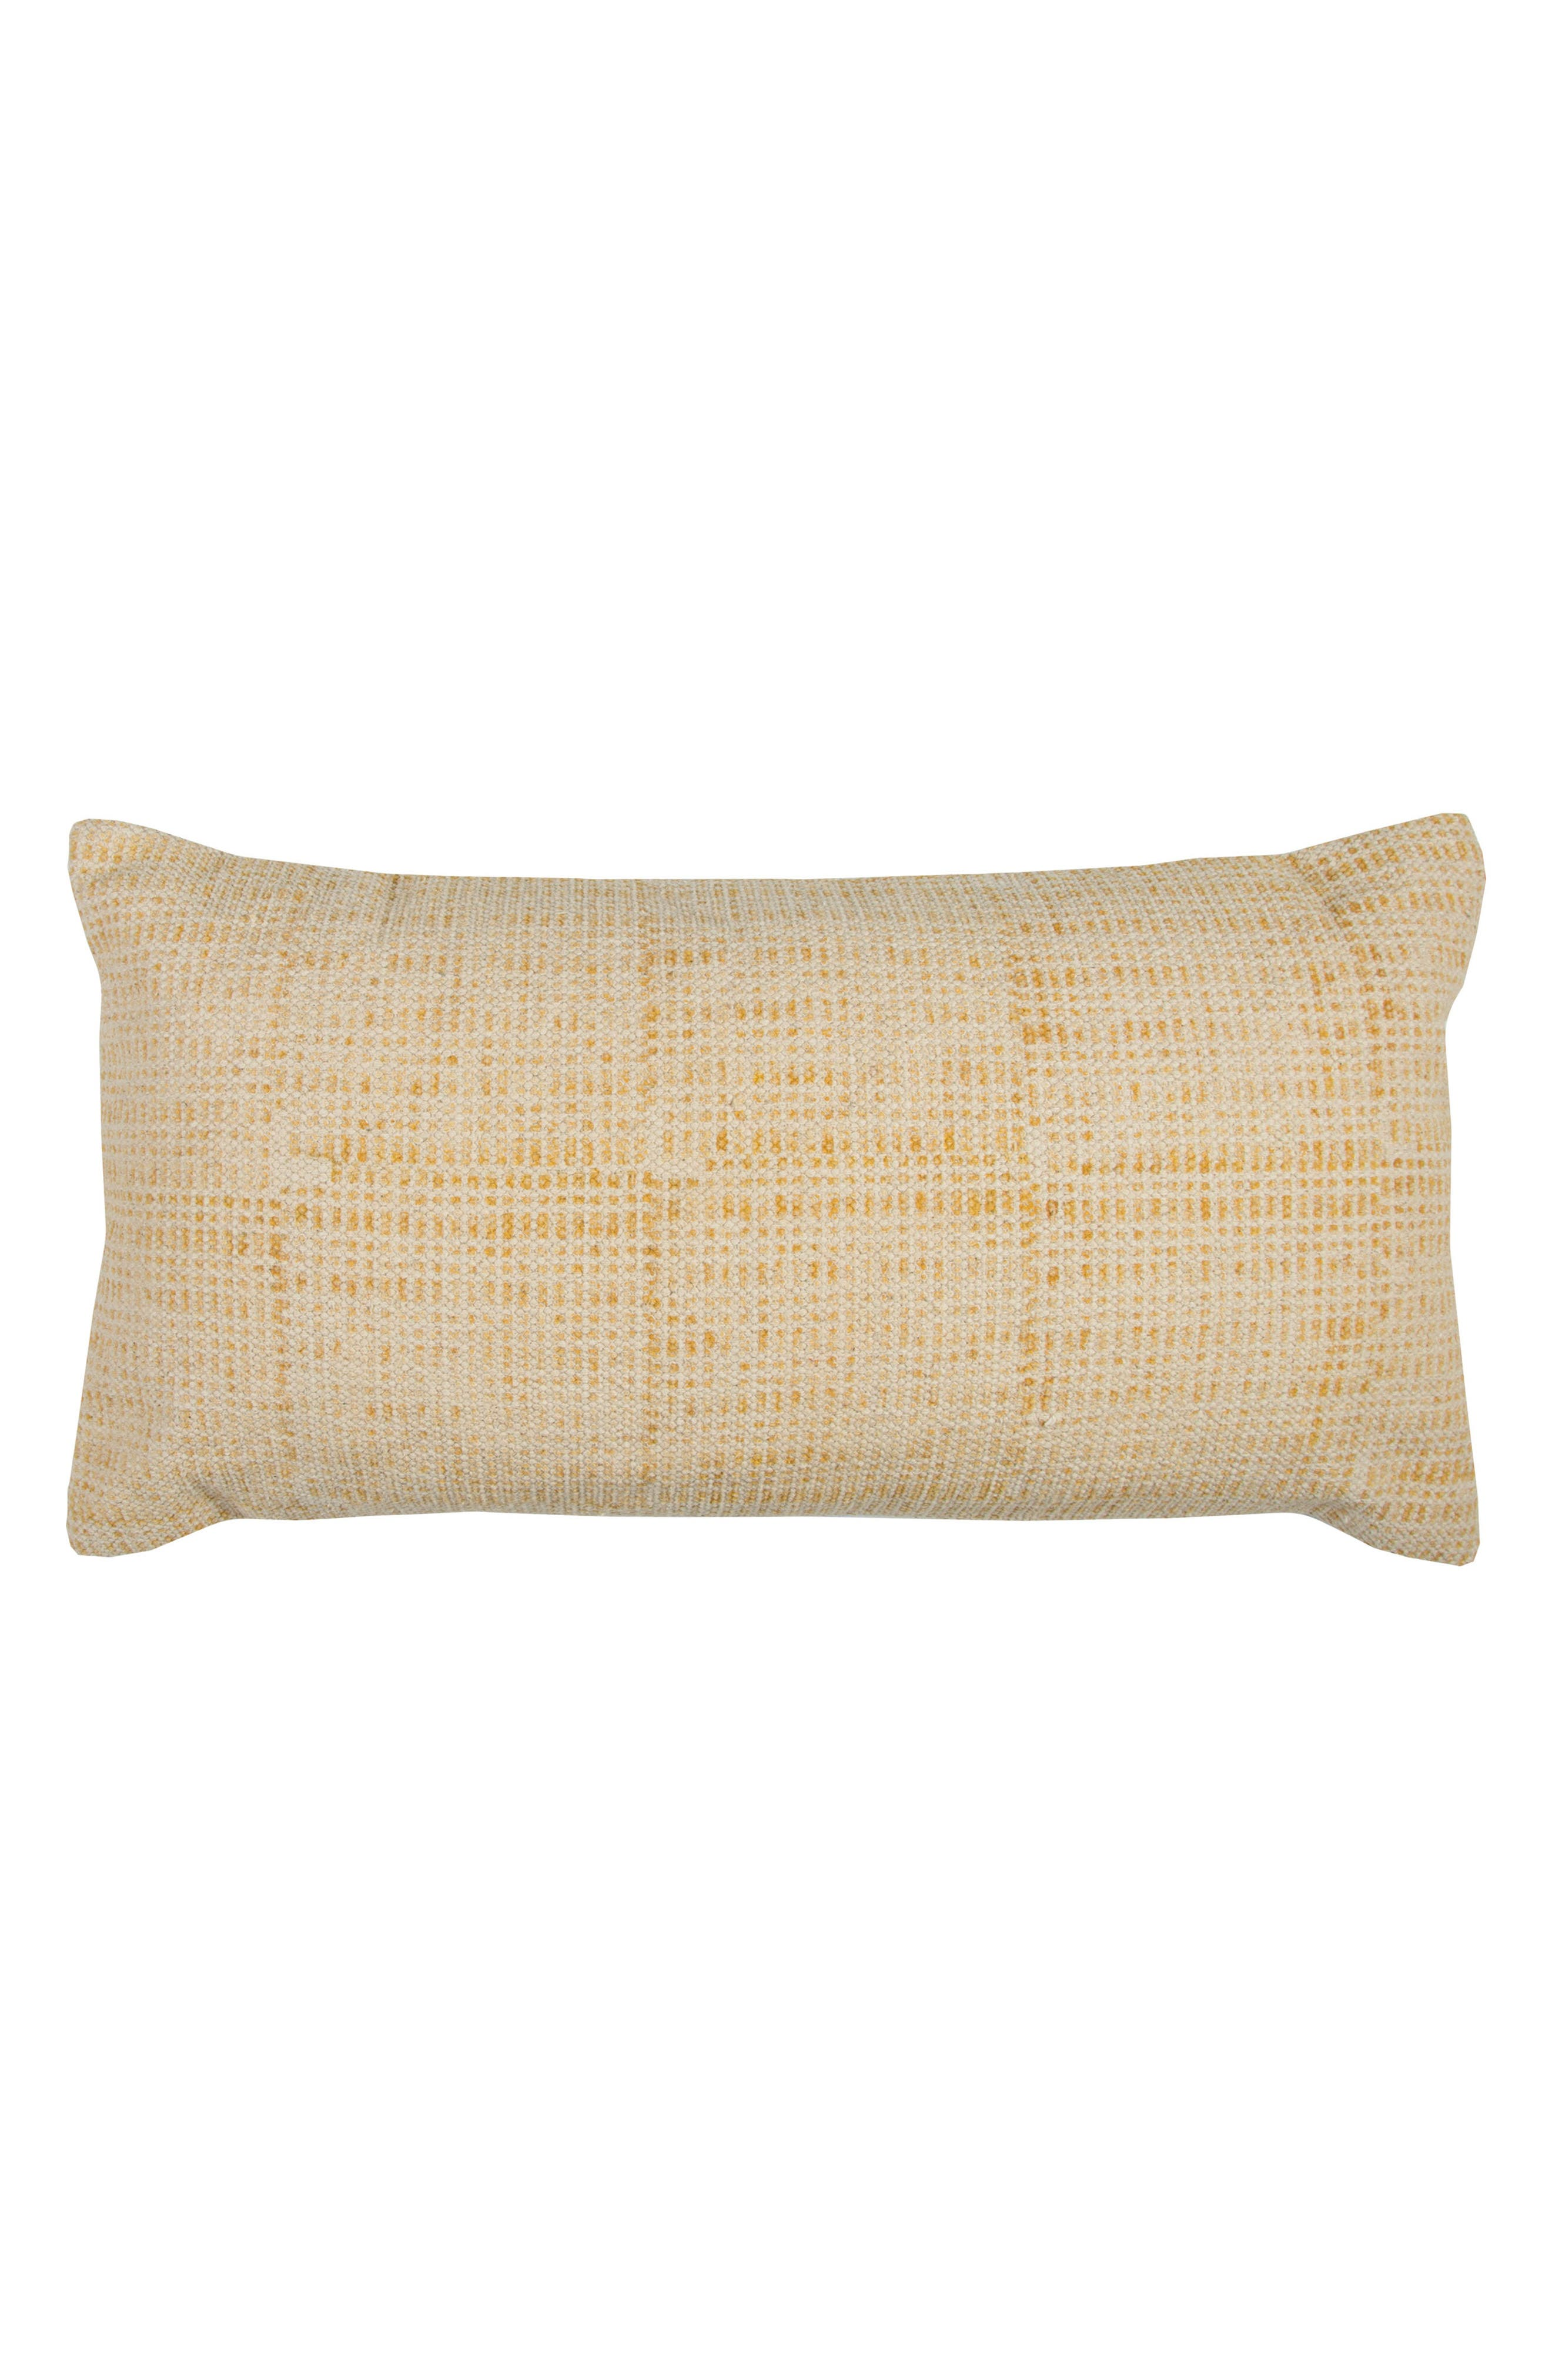 Woven Accent Pillow,                             Main thumbnail 1, color,                             Yellow